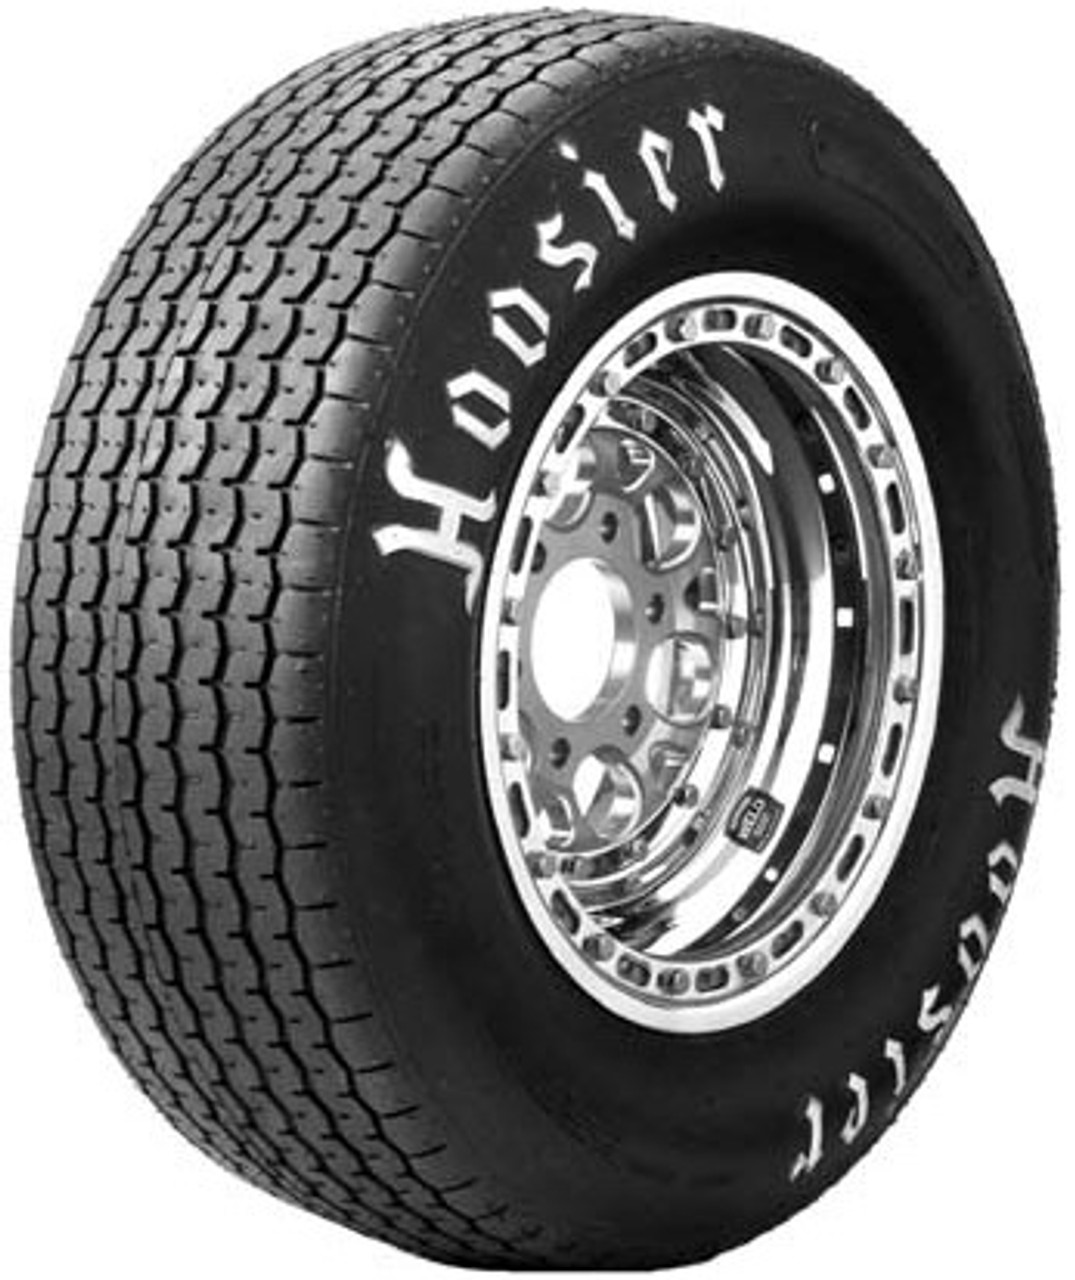 Hoosier E-Mod / Street Stock Dirt Tire